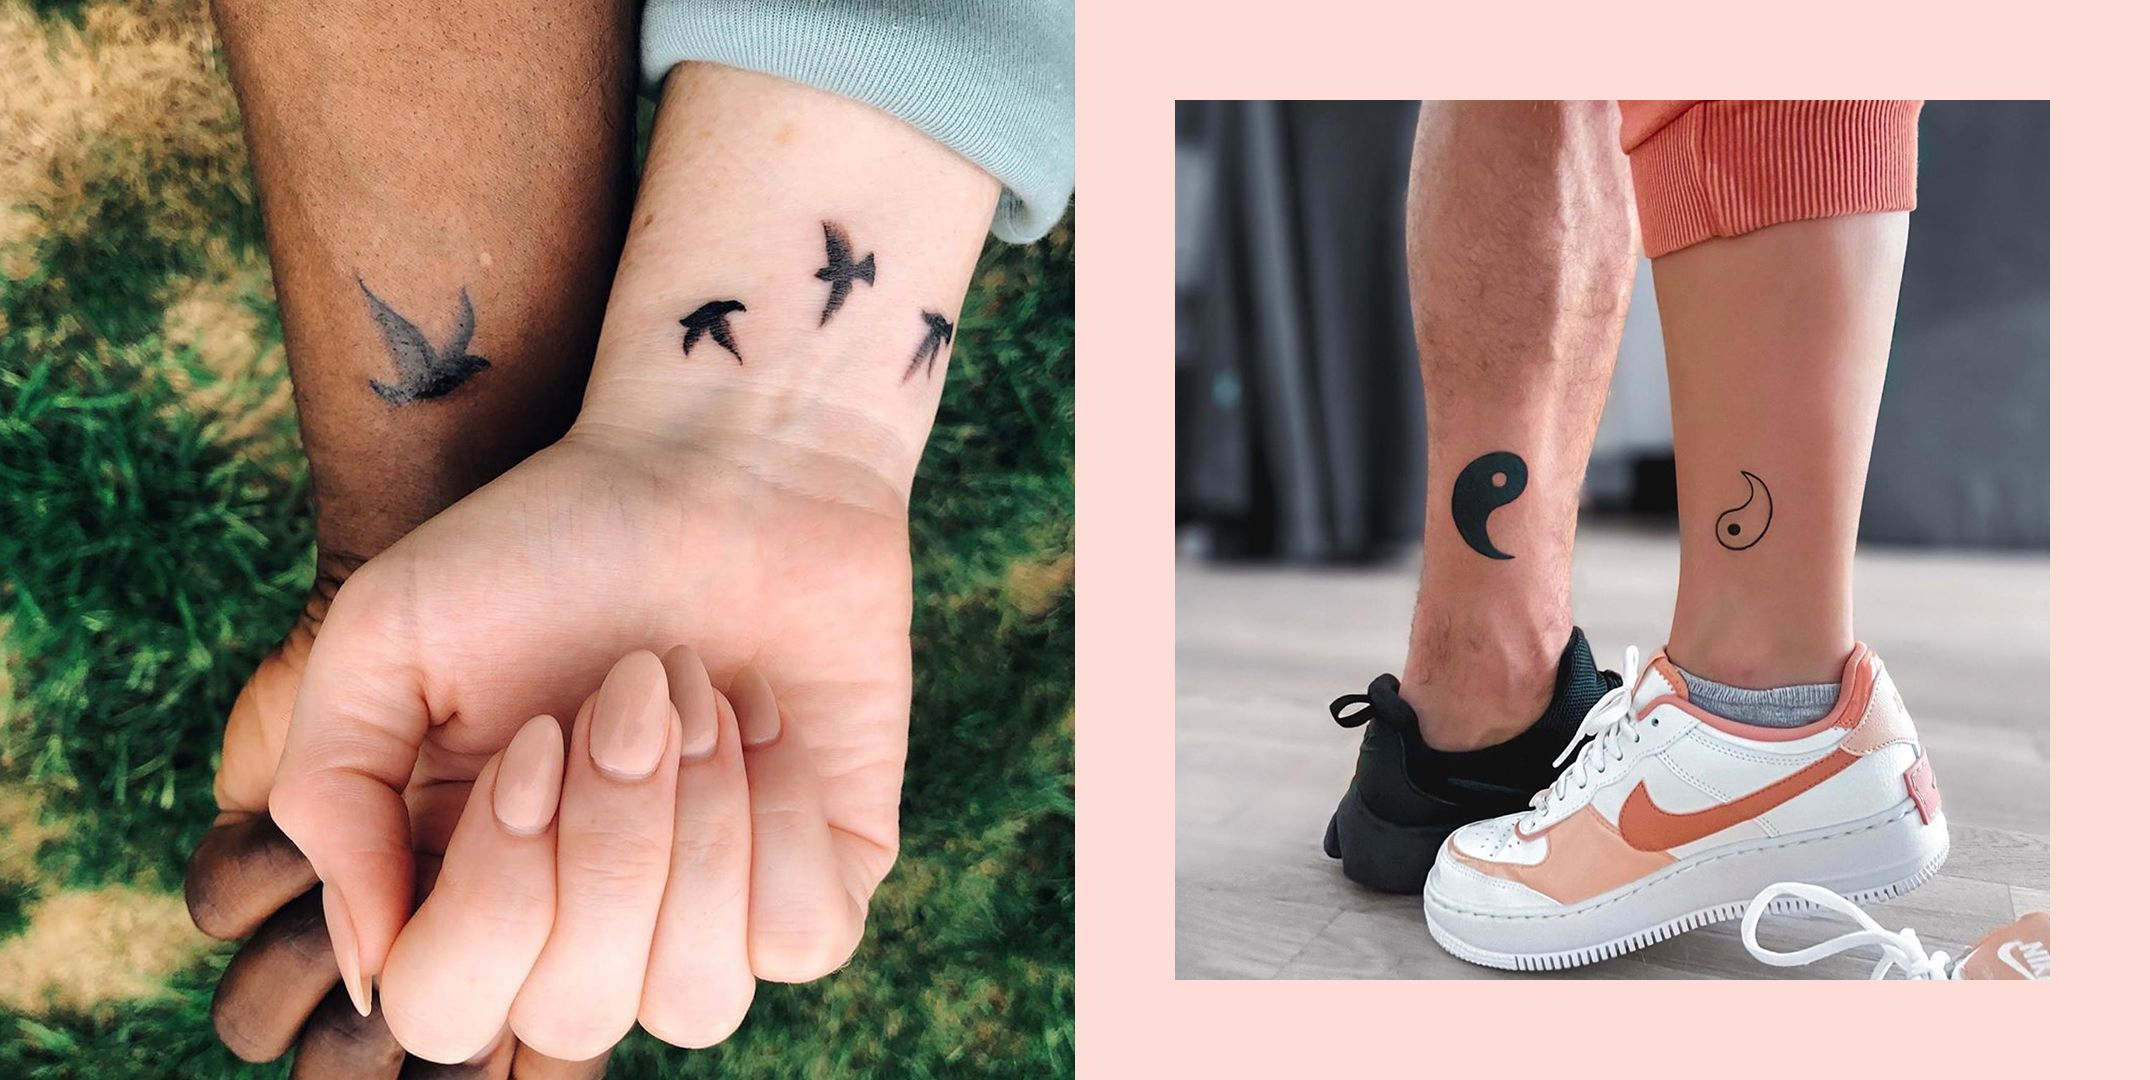 95 Couple Tattoos Ideas For 2020 That Are Truly Cute Not Cheesy